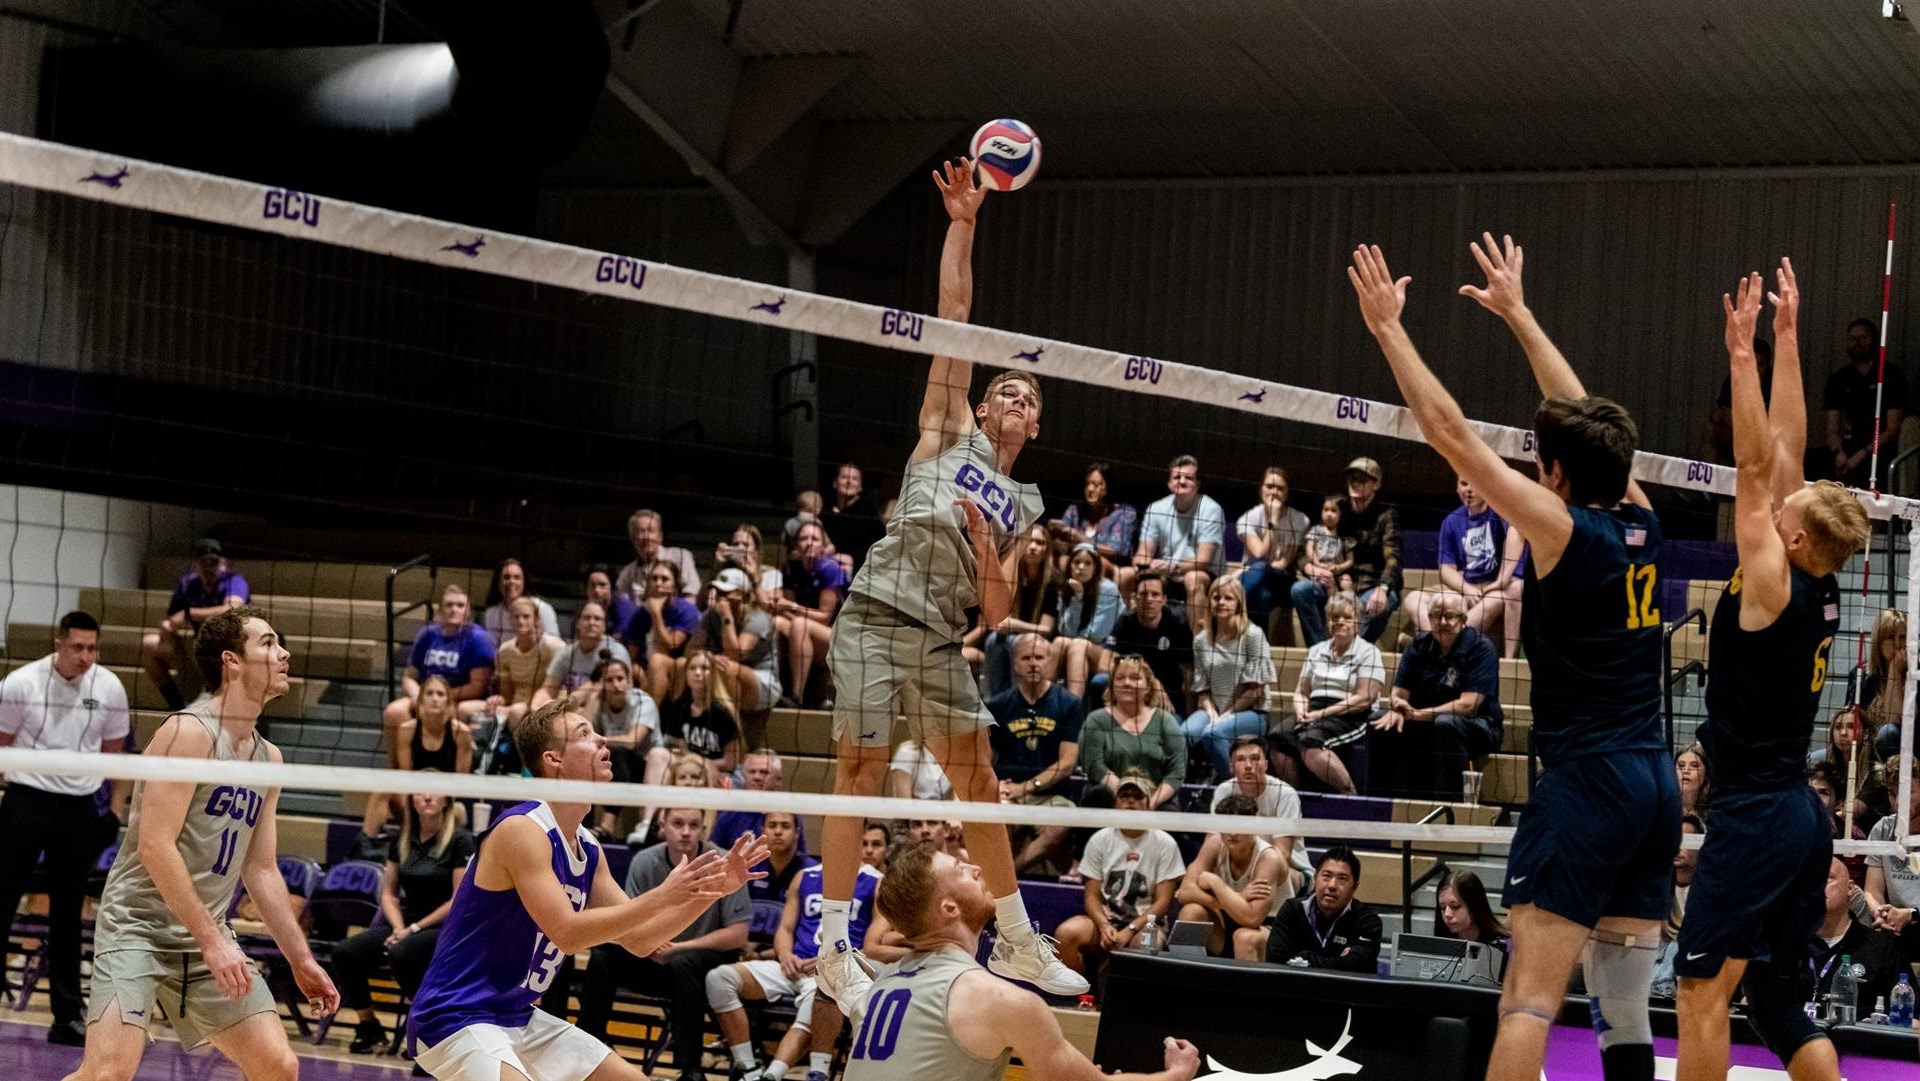 Men S Volleyball Grand Canyon University Athletics